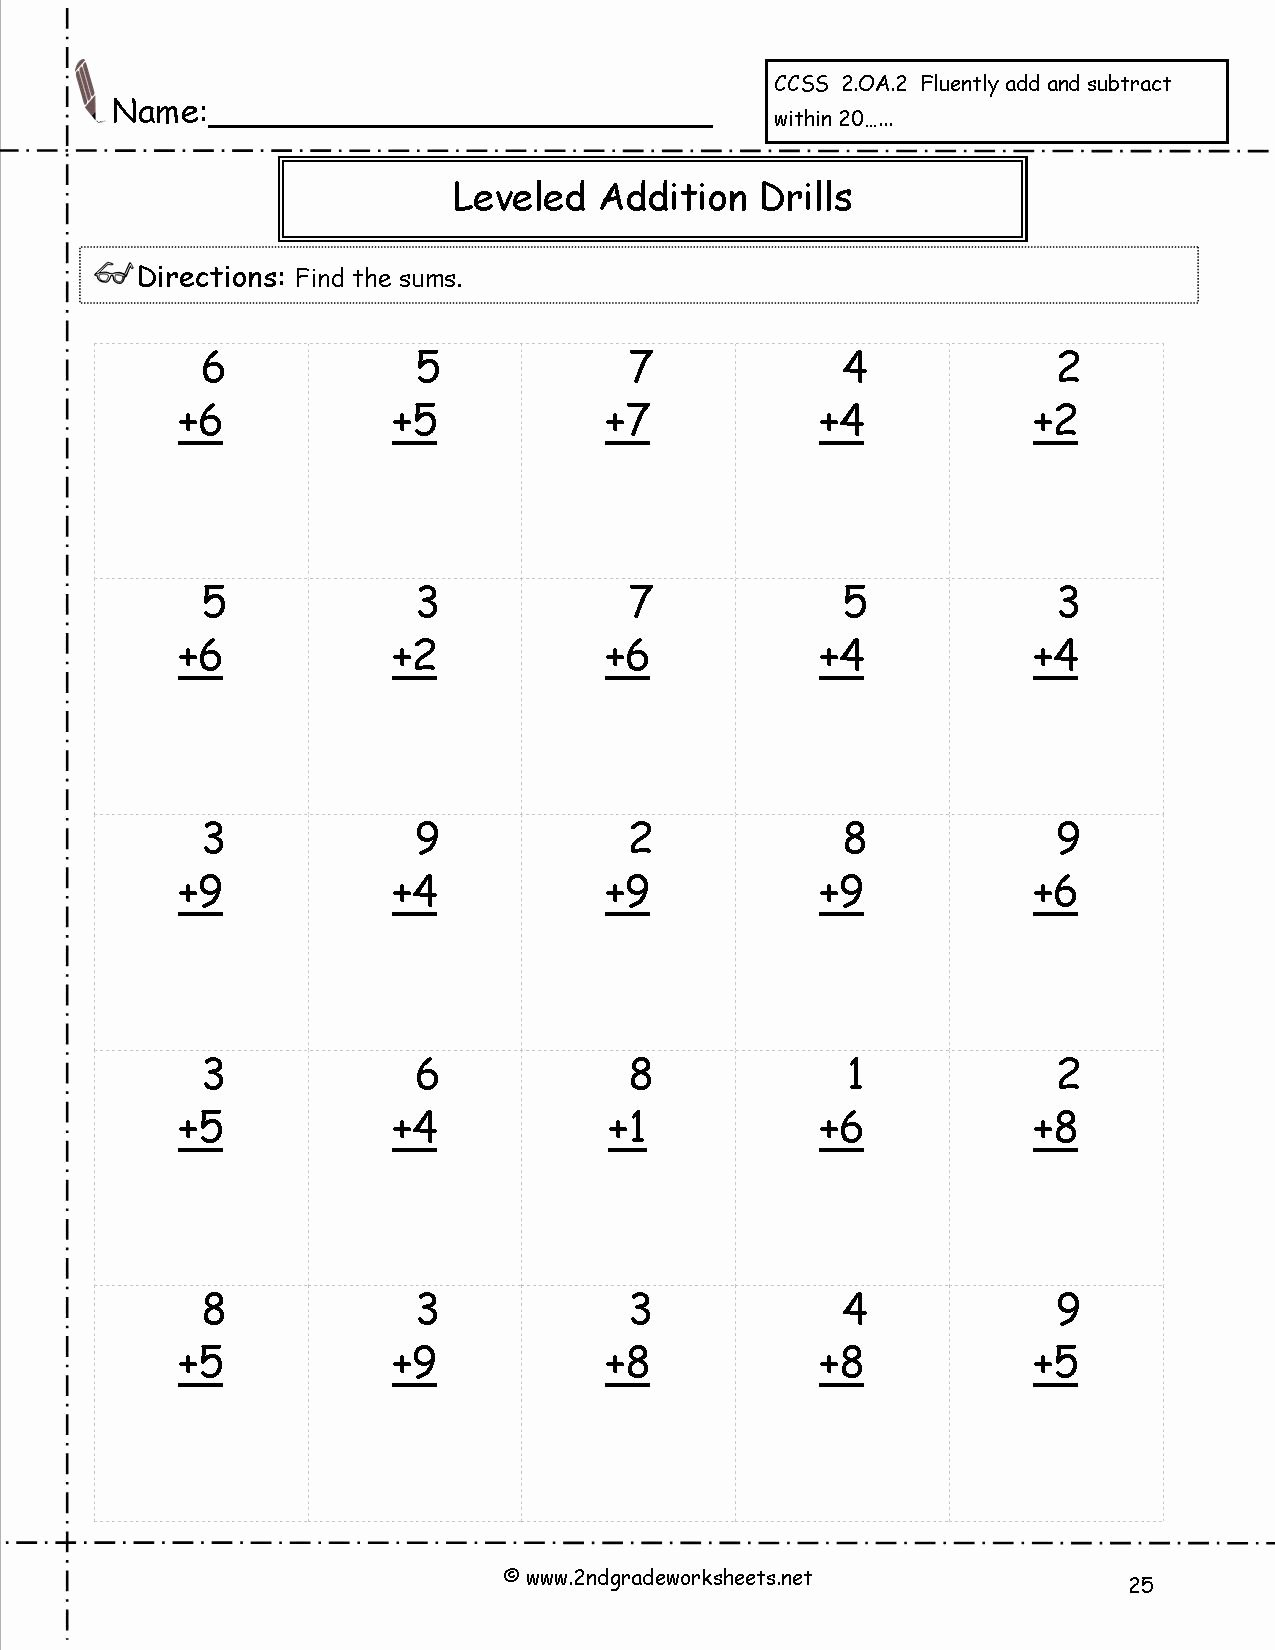 Math Multiplication Worksheets Grade 2 Inspirational Math Worksheet Multiplication Worksheets for Grade 2 Free